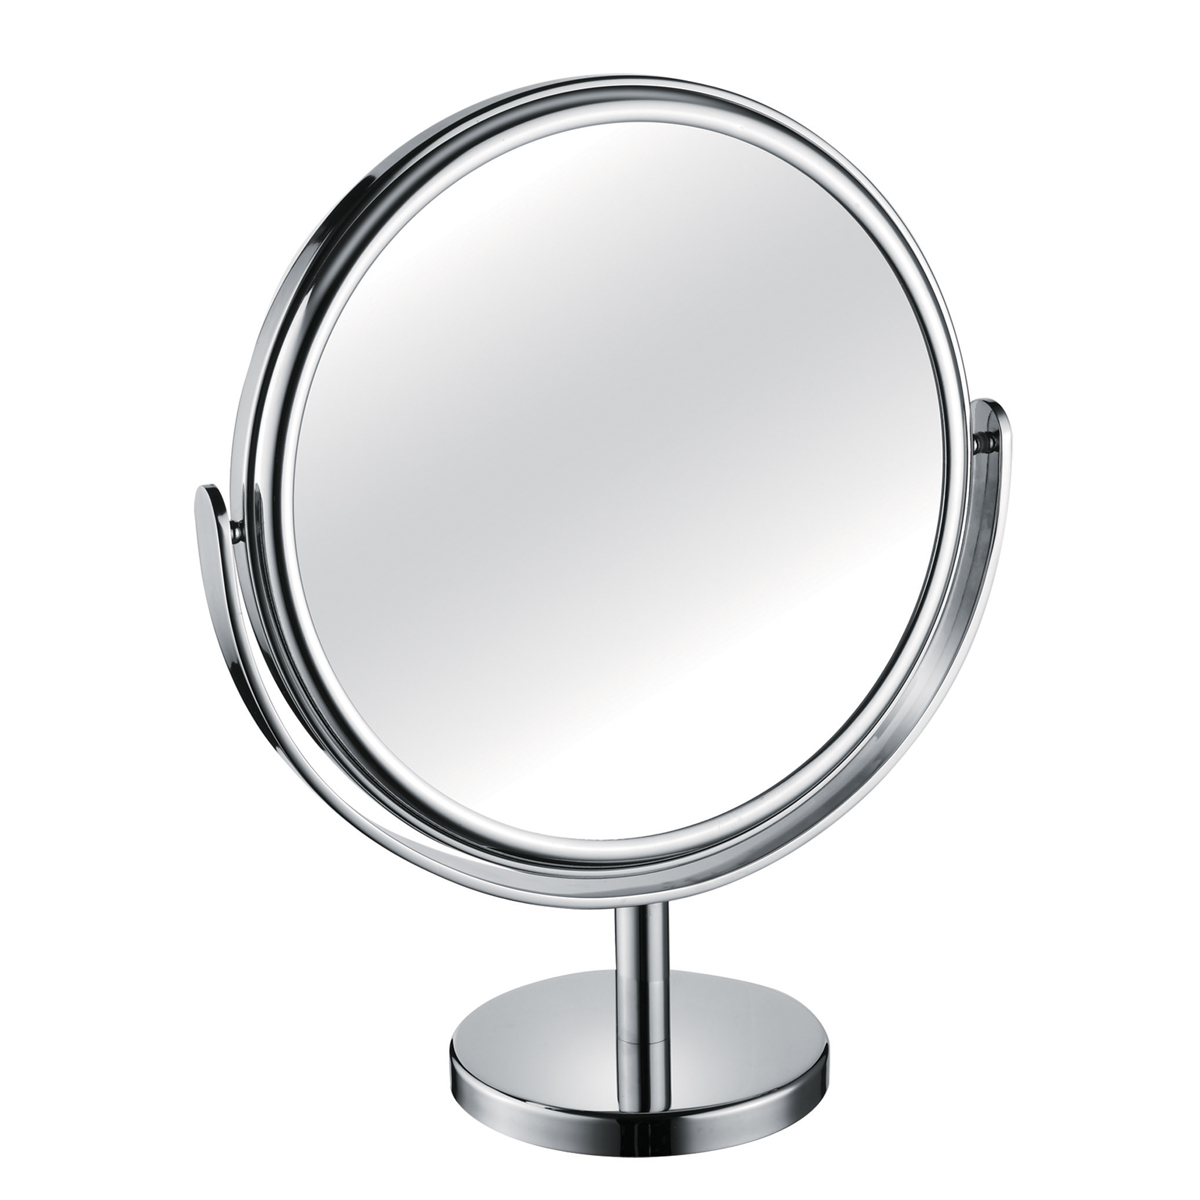 1200 330 30 chrome - Mirror Pedestal Chrome Large Diameter 3x Magnification 'Tess' - 330/30CHR